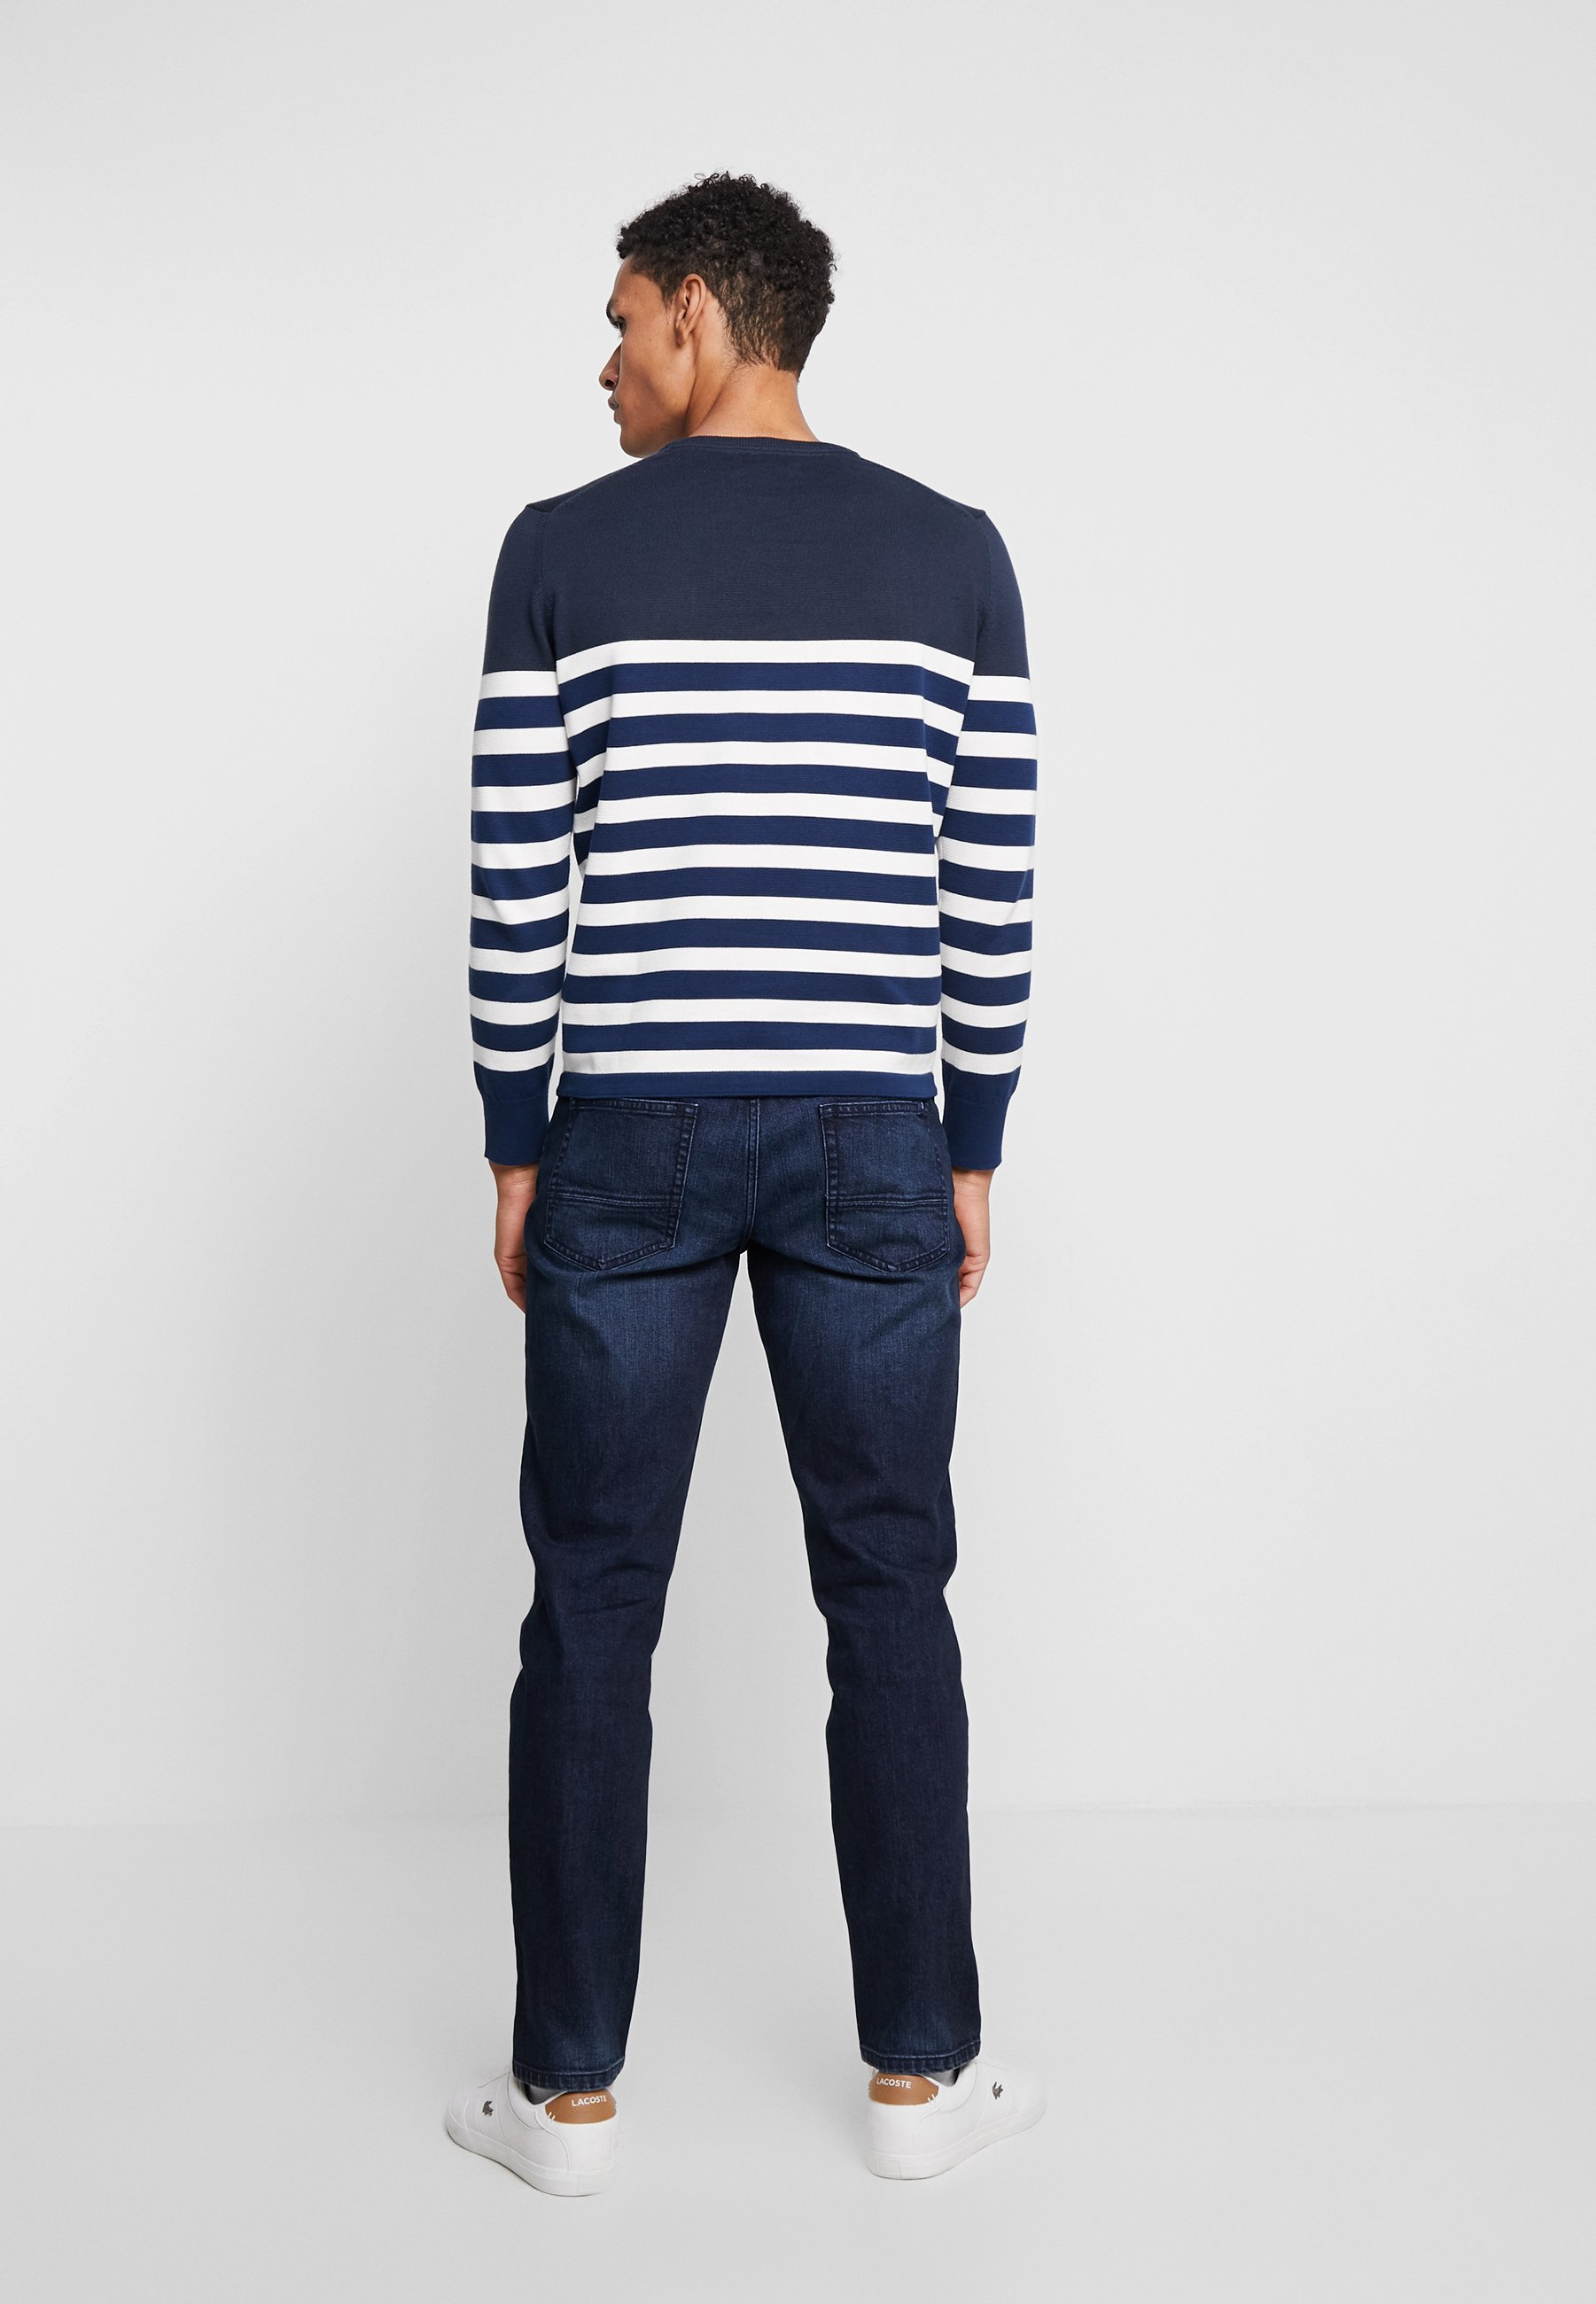 Neck Total Marc Crew StripePullover O'polo Eclipse wkXTiuOPZl